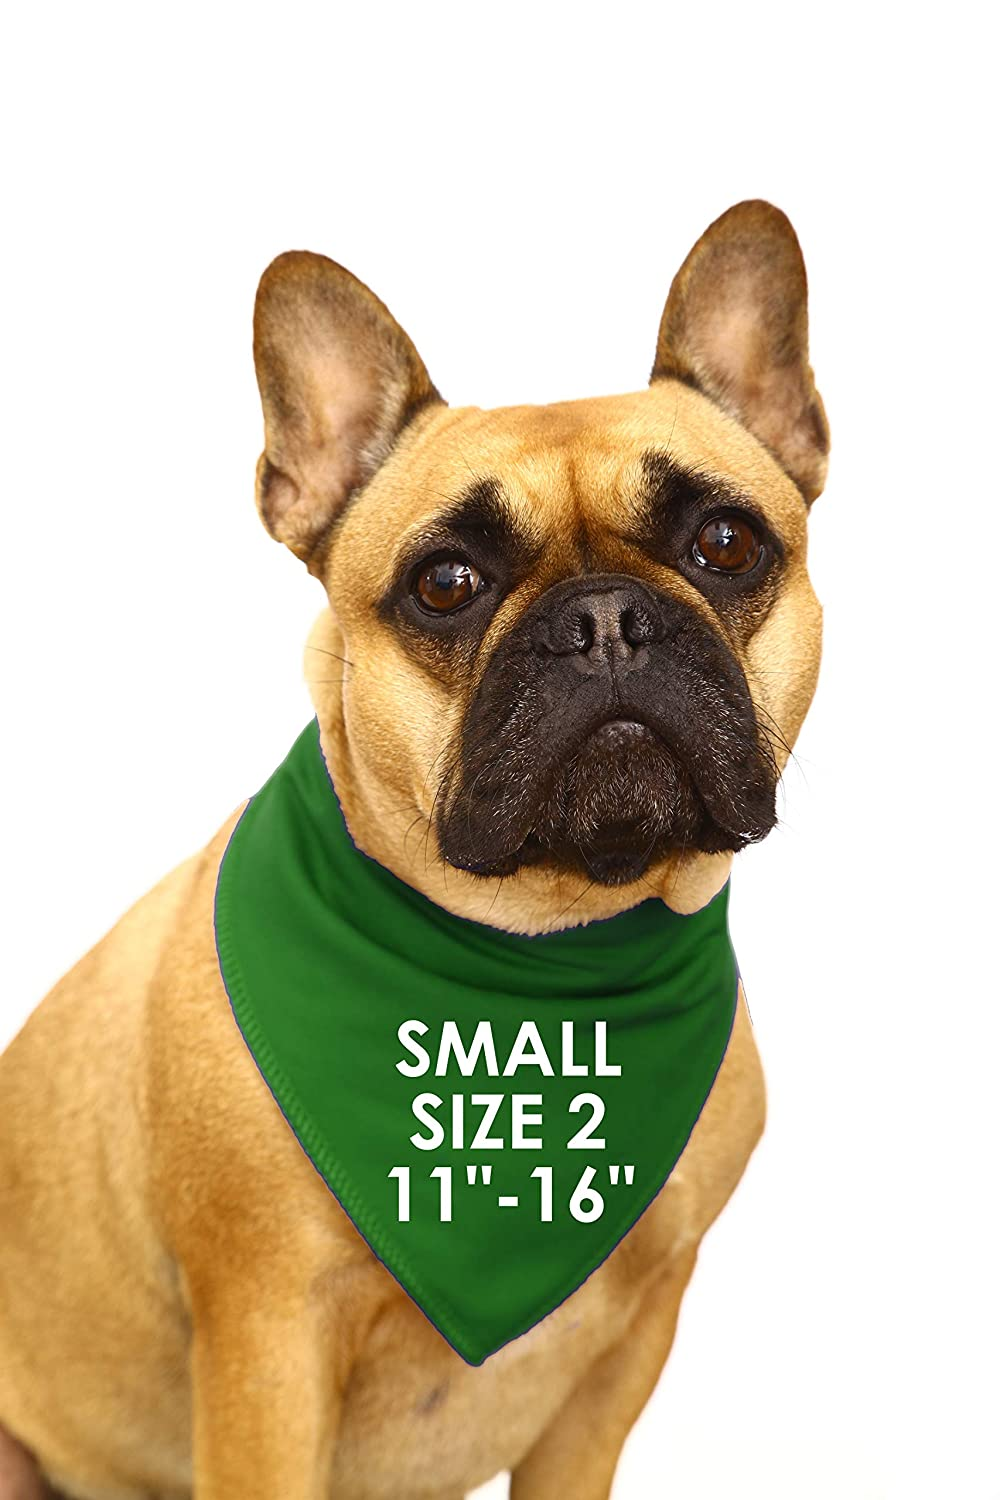 Spoilt Rotten Pets SIZE 2 Small//Medium Dog /– Fits 11-16 Neck S2 Designer Dog Bandana Harry Potter Style - Slytherin House Four Adjustable From A Tiny Chihuahua to An Extra Large St Bernard